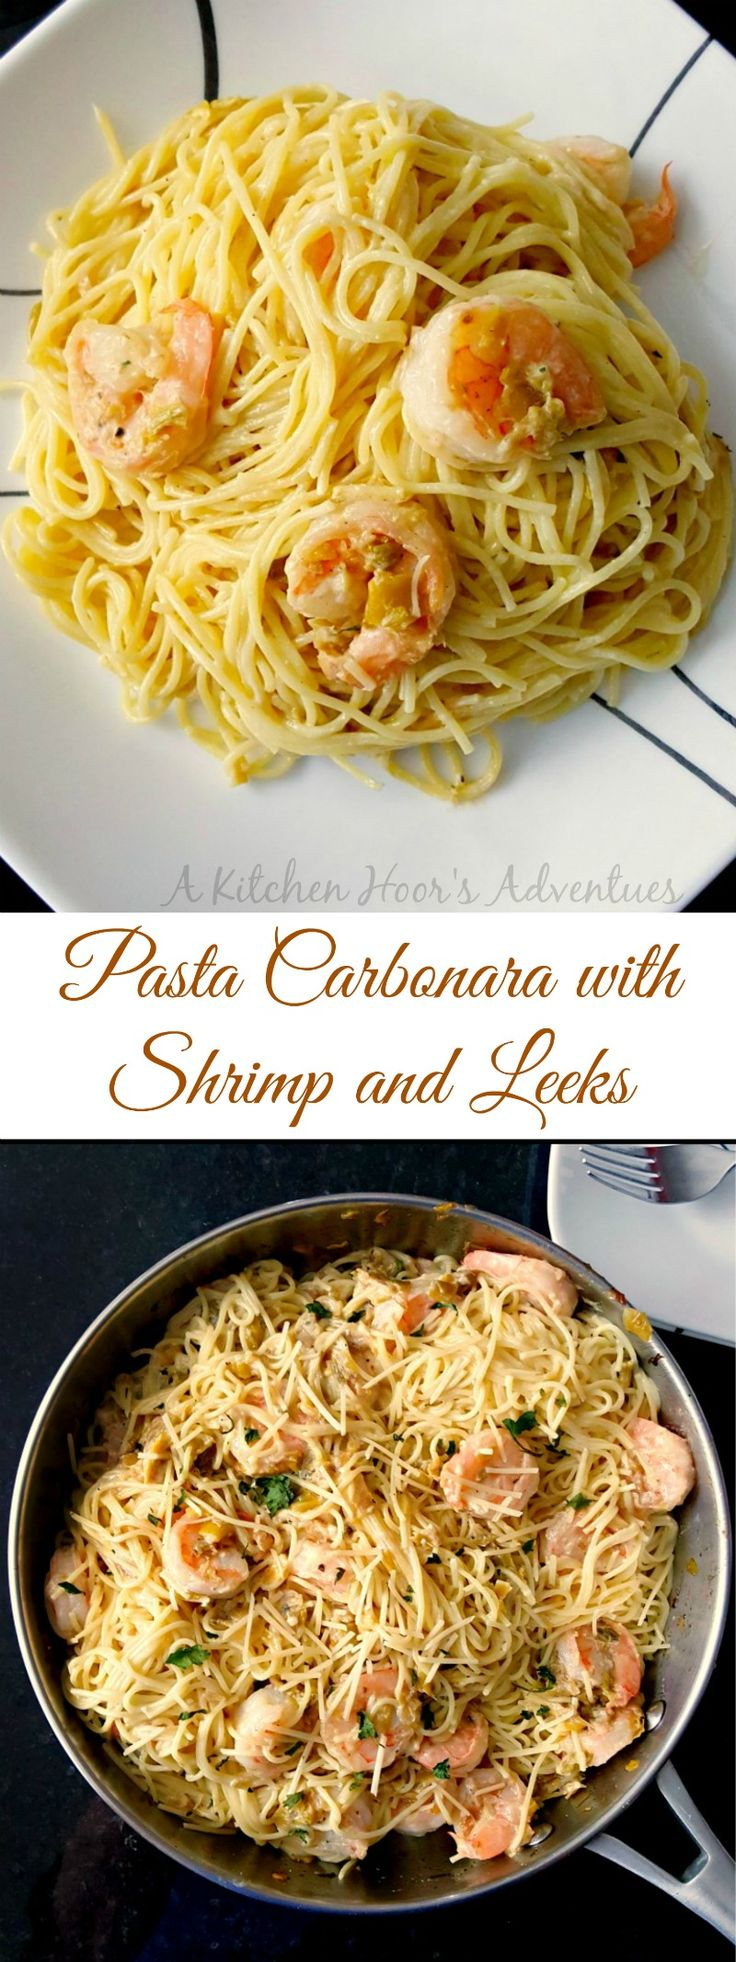 Egg-straordinary #SundaySupper - Pasta Carbonara with Shrimp and Leeks recipe is a fast paced recipe that tastes amazing and is on the table super quick! The eggs combine with the cheese to make a silky smooth sauce for the pasta.